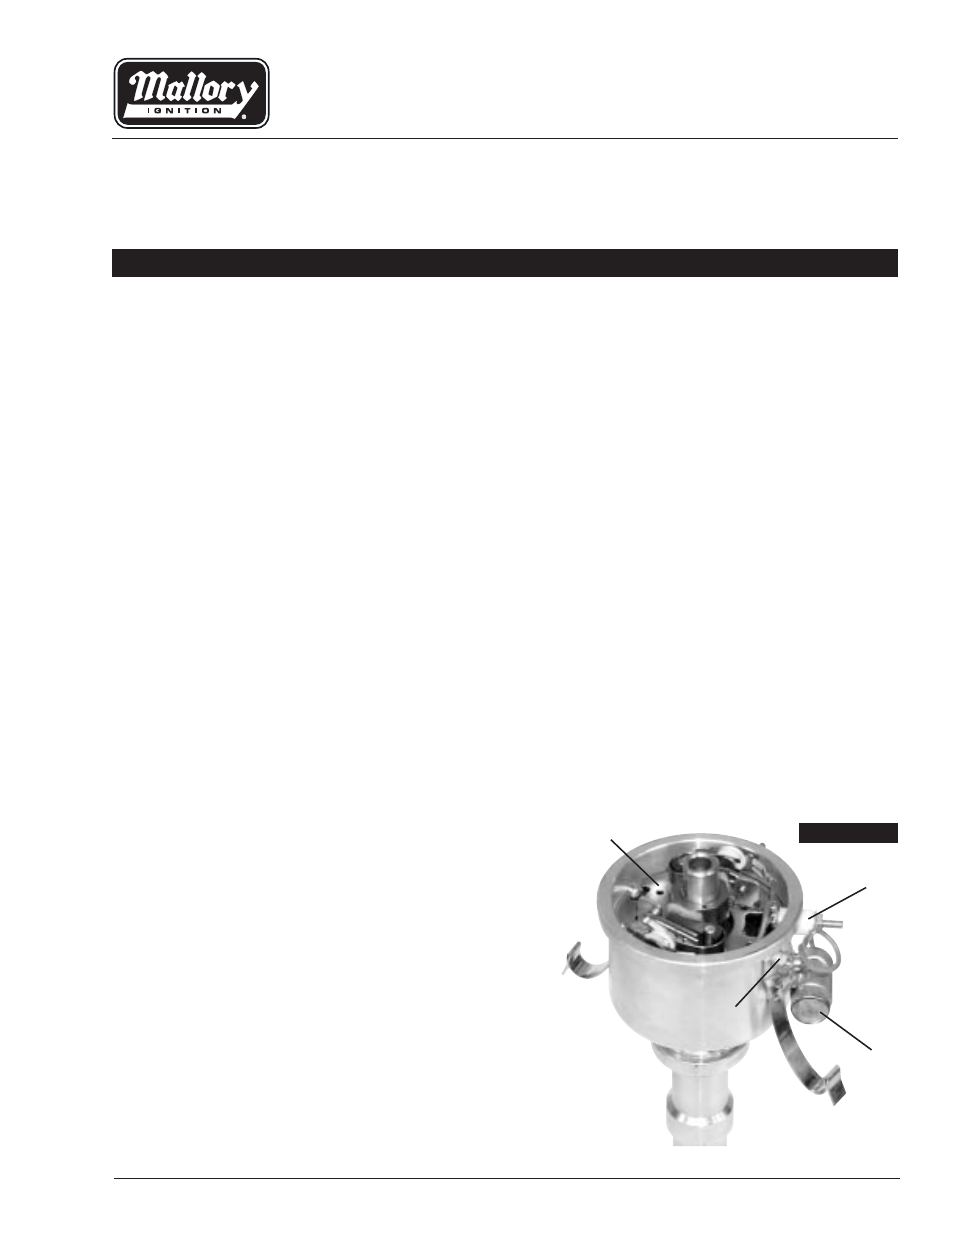 Mallory Breakerless Ignition Wiring Diagram